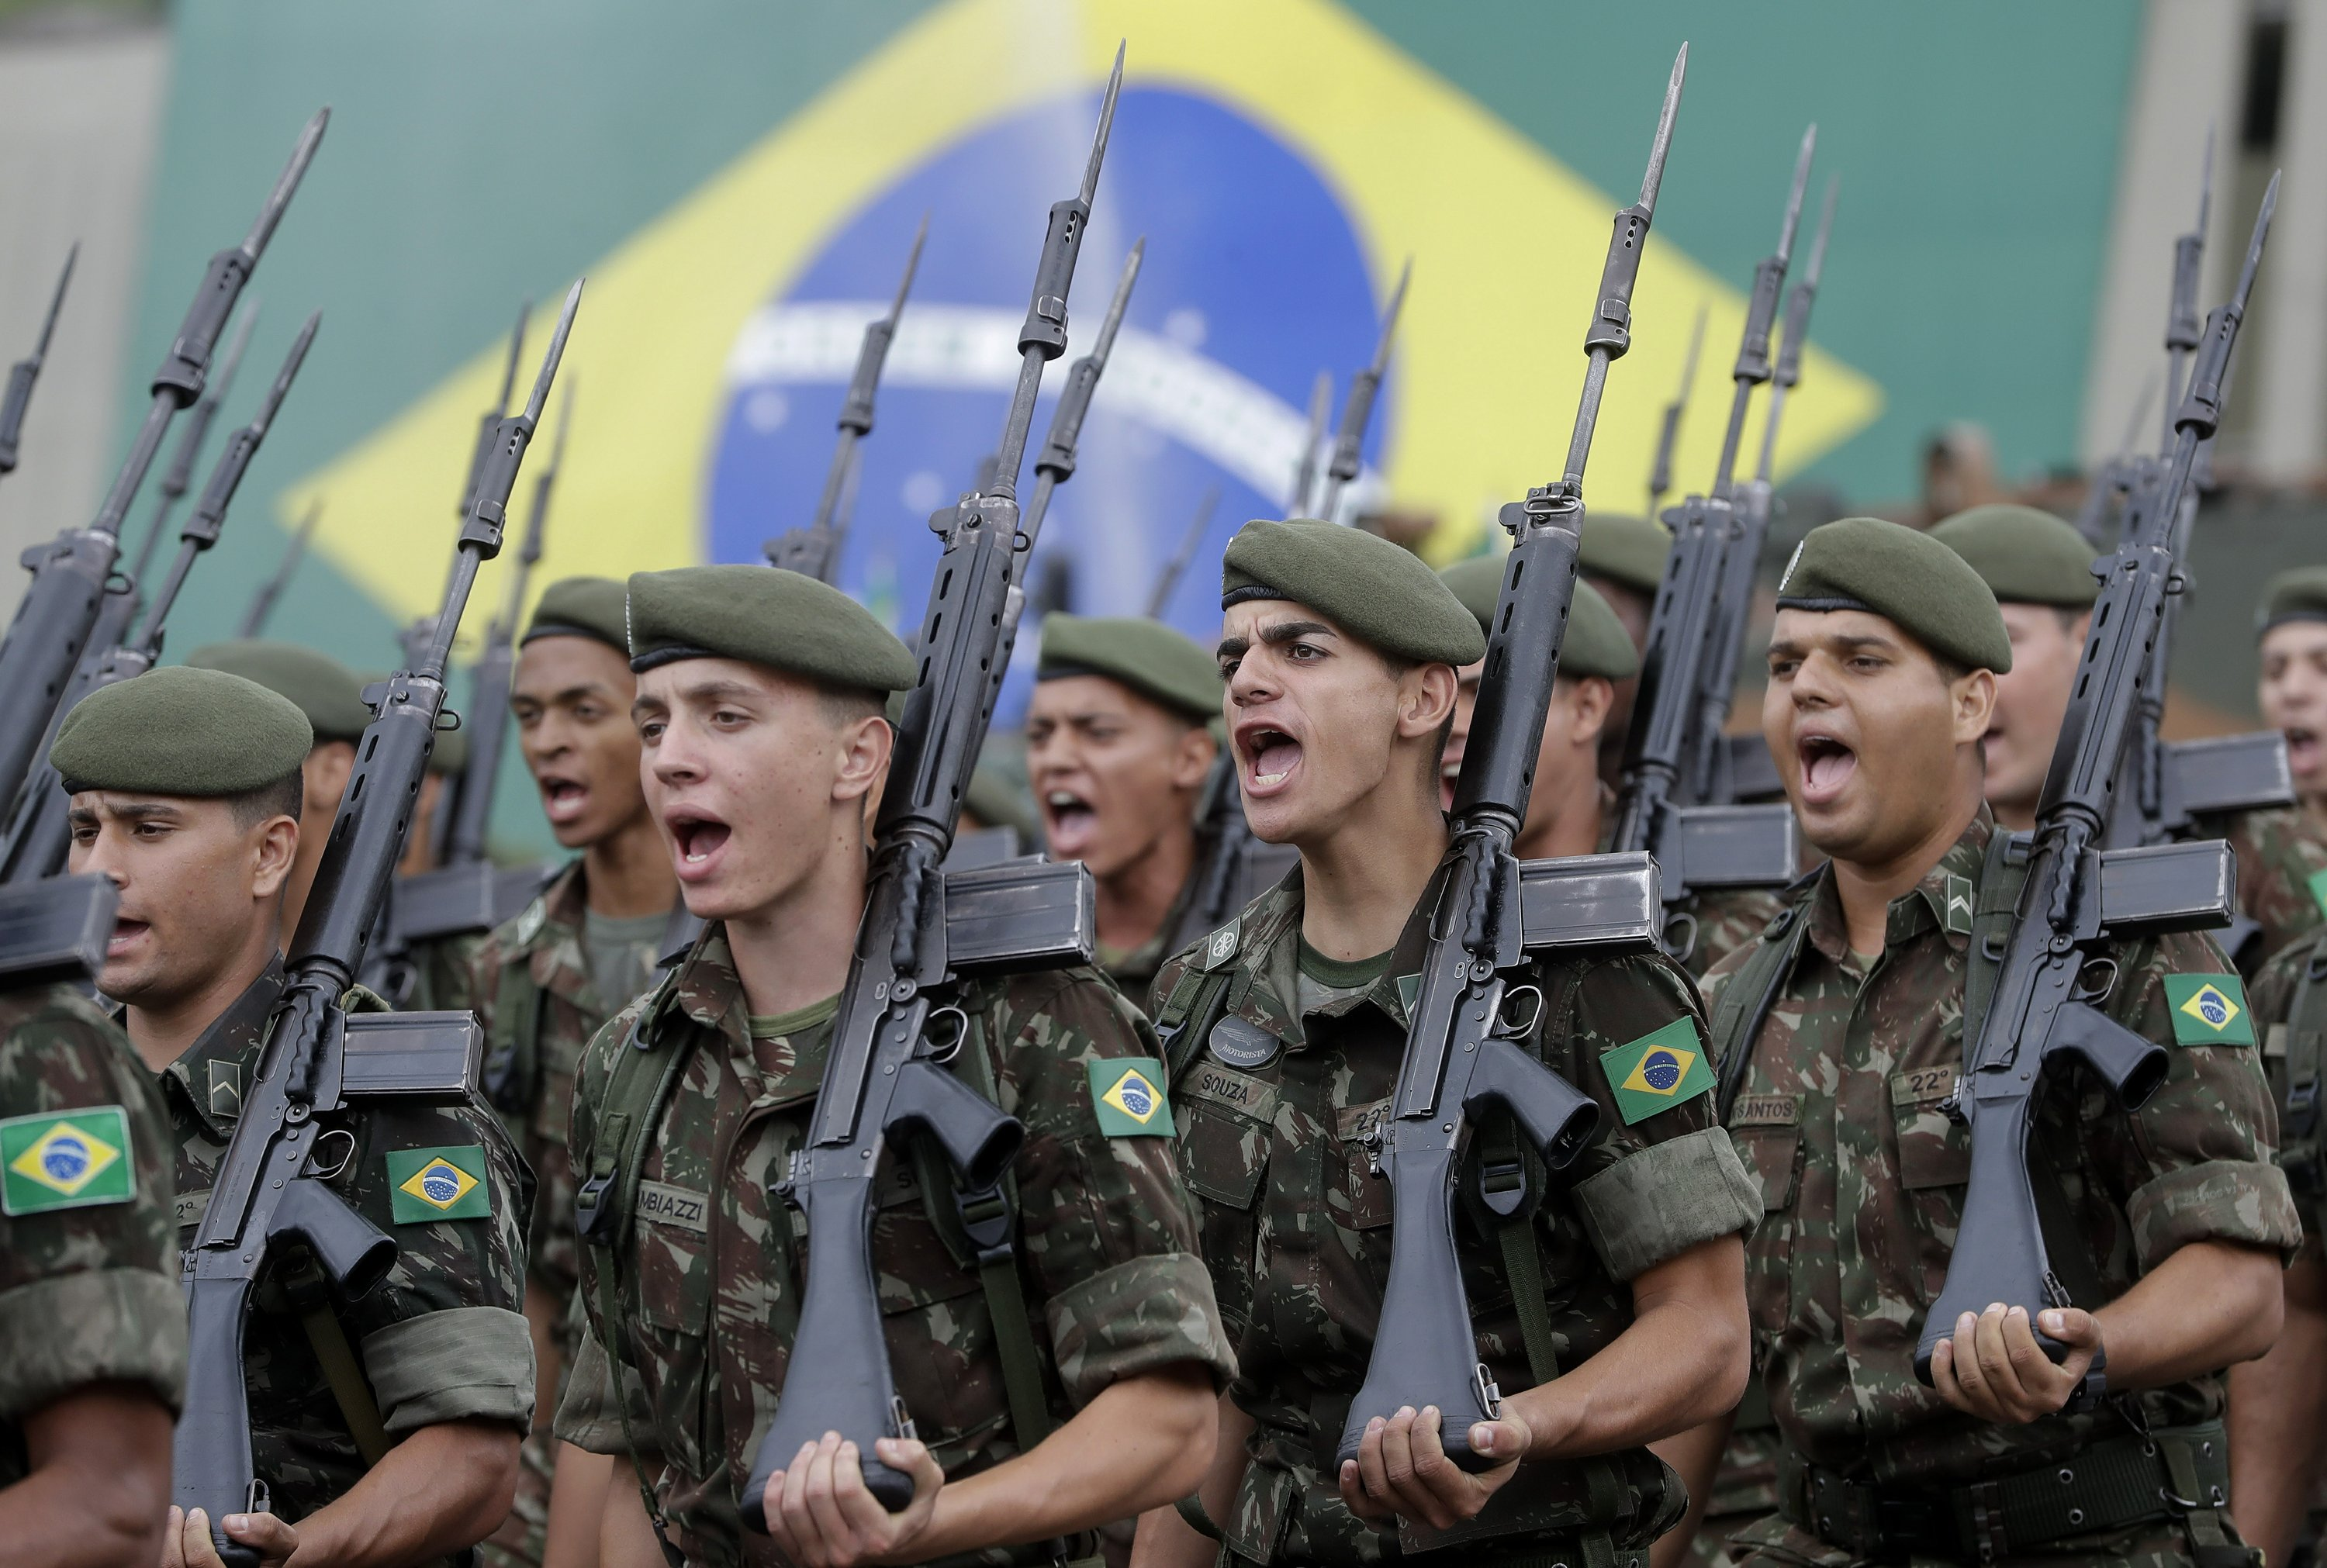 Brazil's military start commemorations of 1964 coup